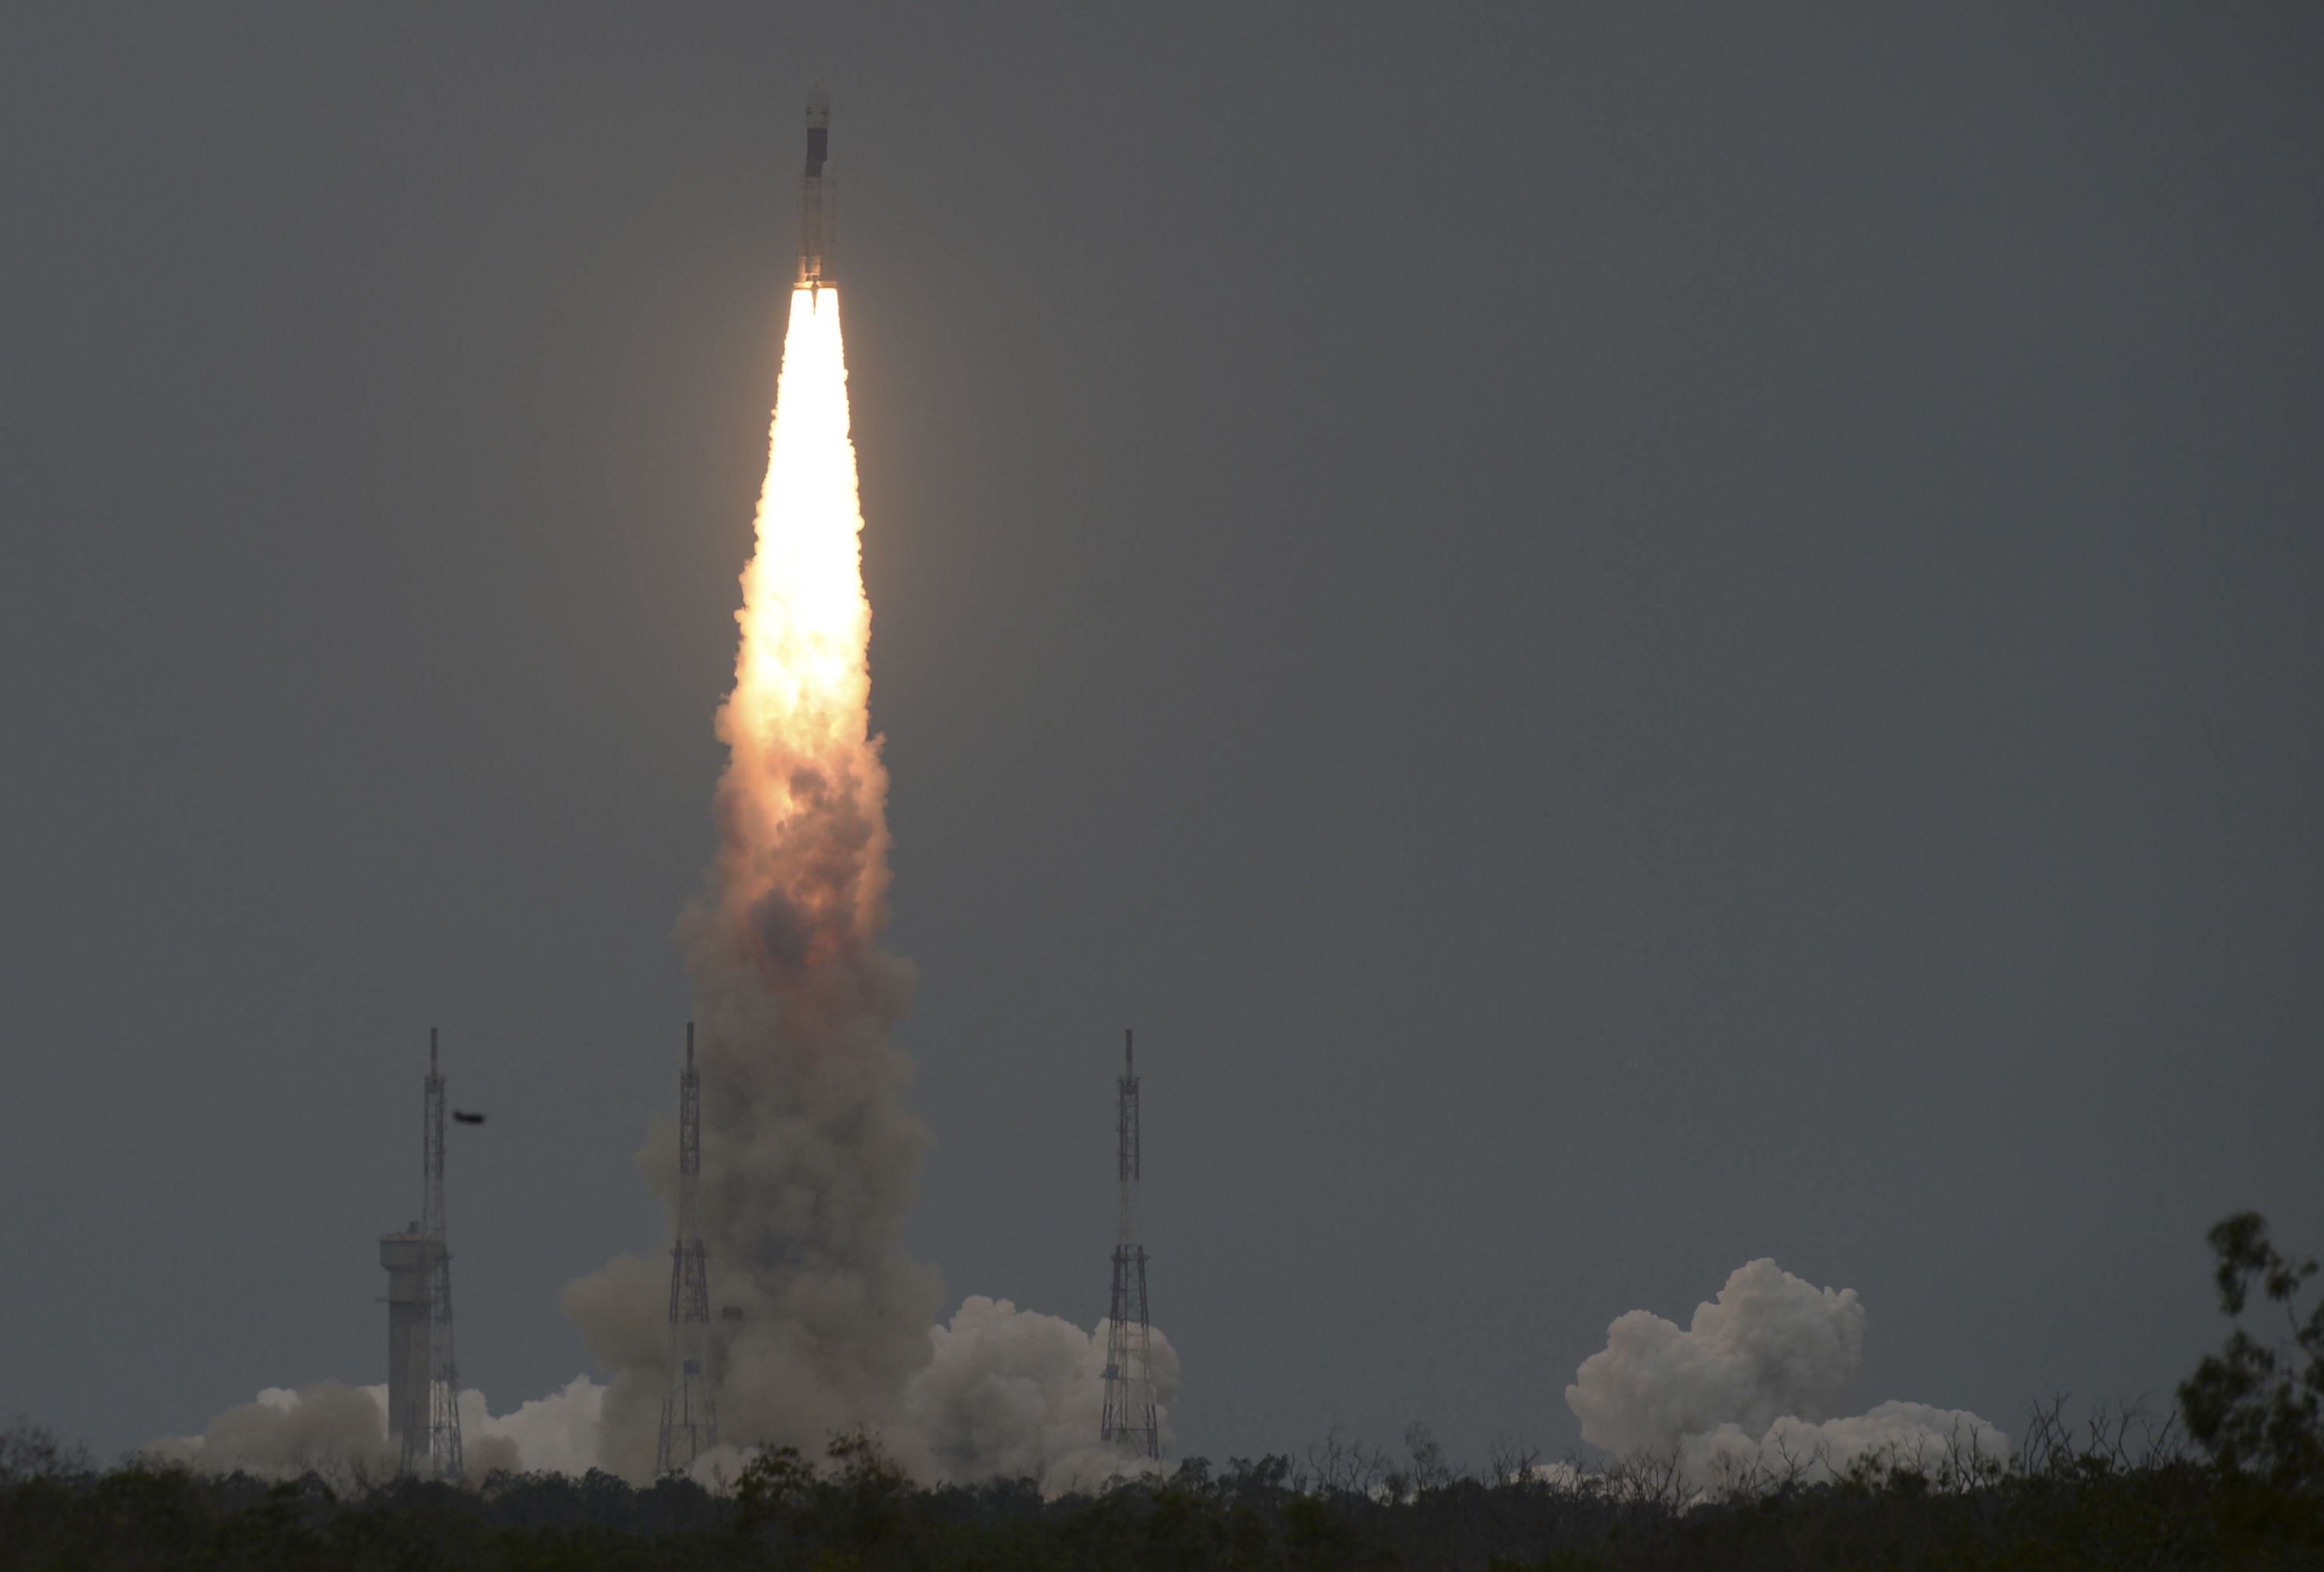 The Indian Space Research Organisation's (ISRO) Chandrayaan-2 (Moon Chariot 2), with on board the Geosynchronous Satellite Launch Vehicle (GSLV-mark III-M1), launches at the Satish Dhawan Space Centre in Sriharikota, an island off the coast of southern Andhra Pradesh state, on July 22, 2019.